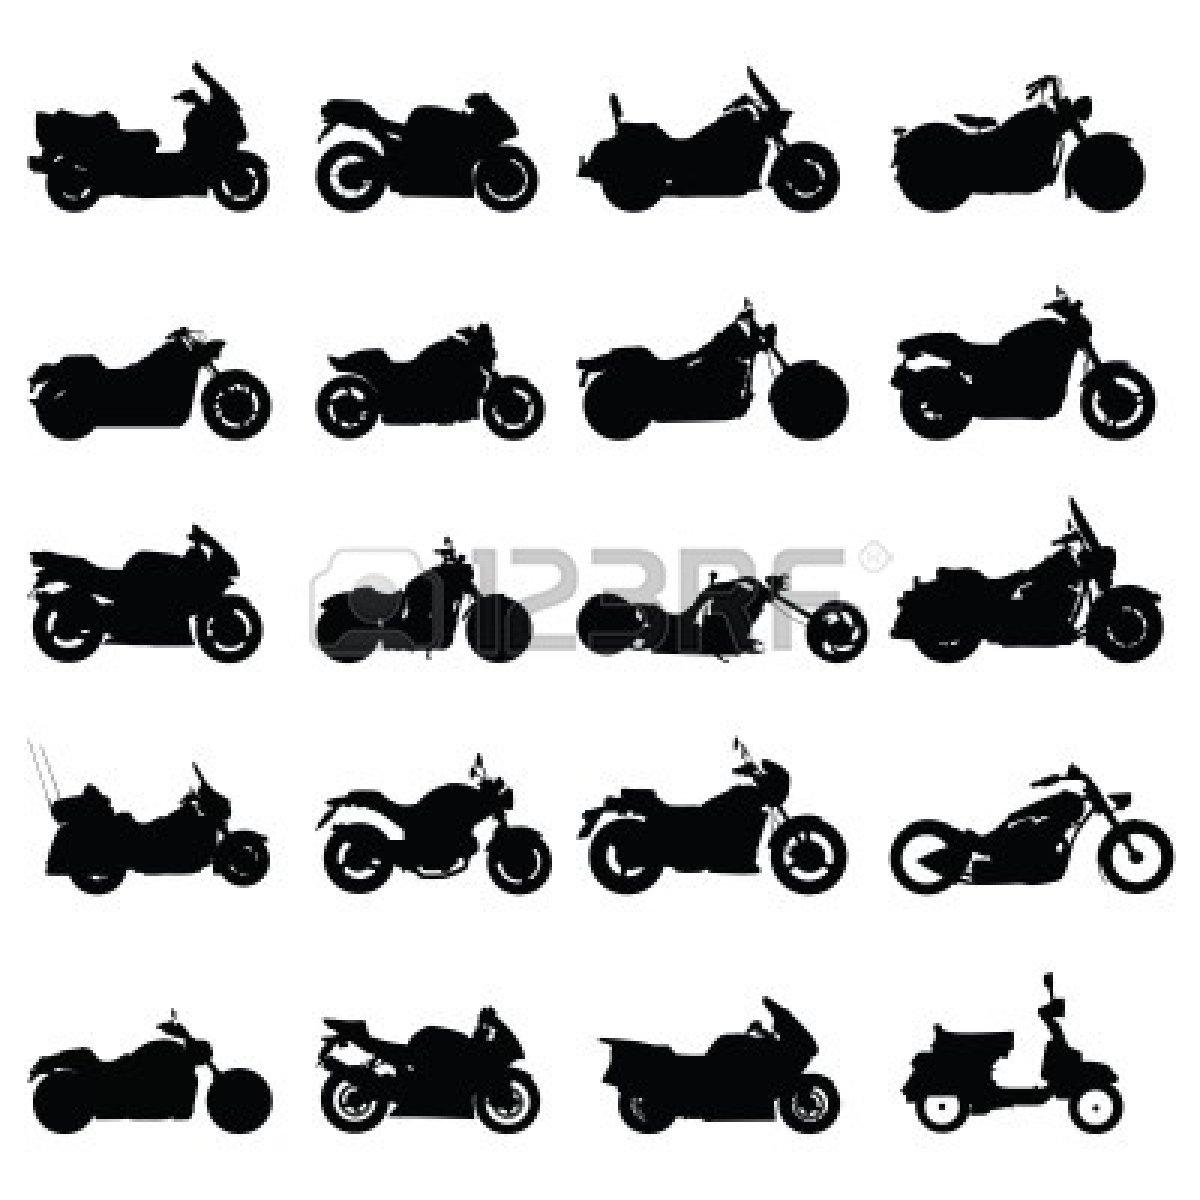 18 Motorcycle Clip Art Vector Graphics Images.